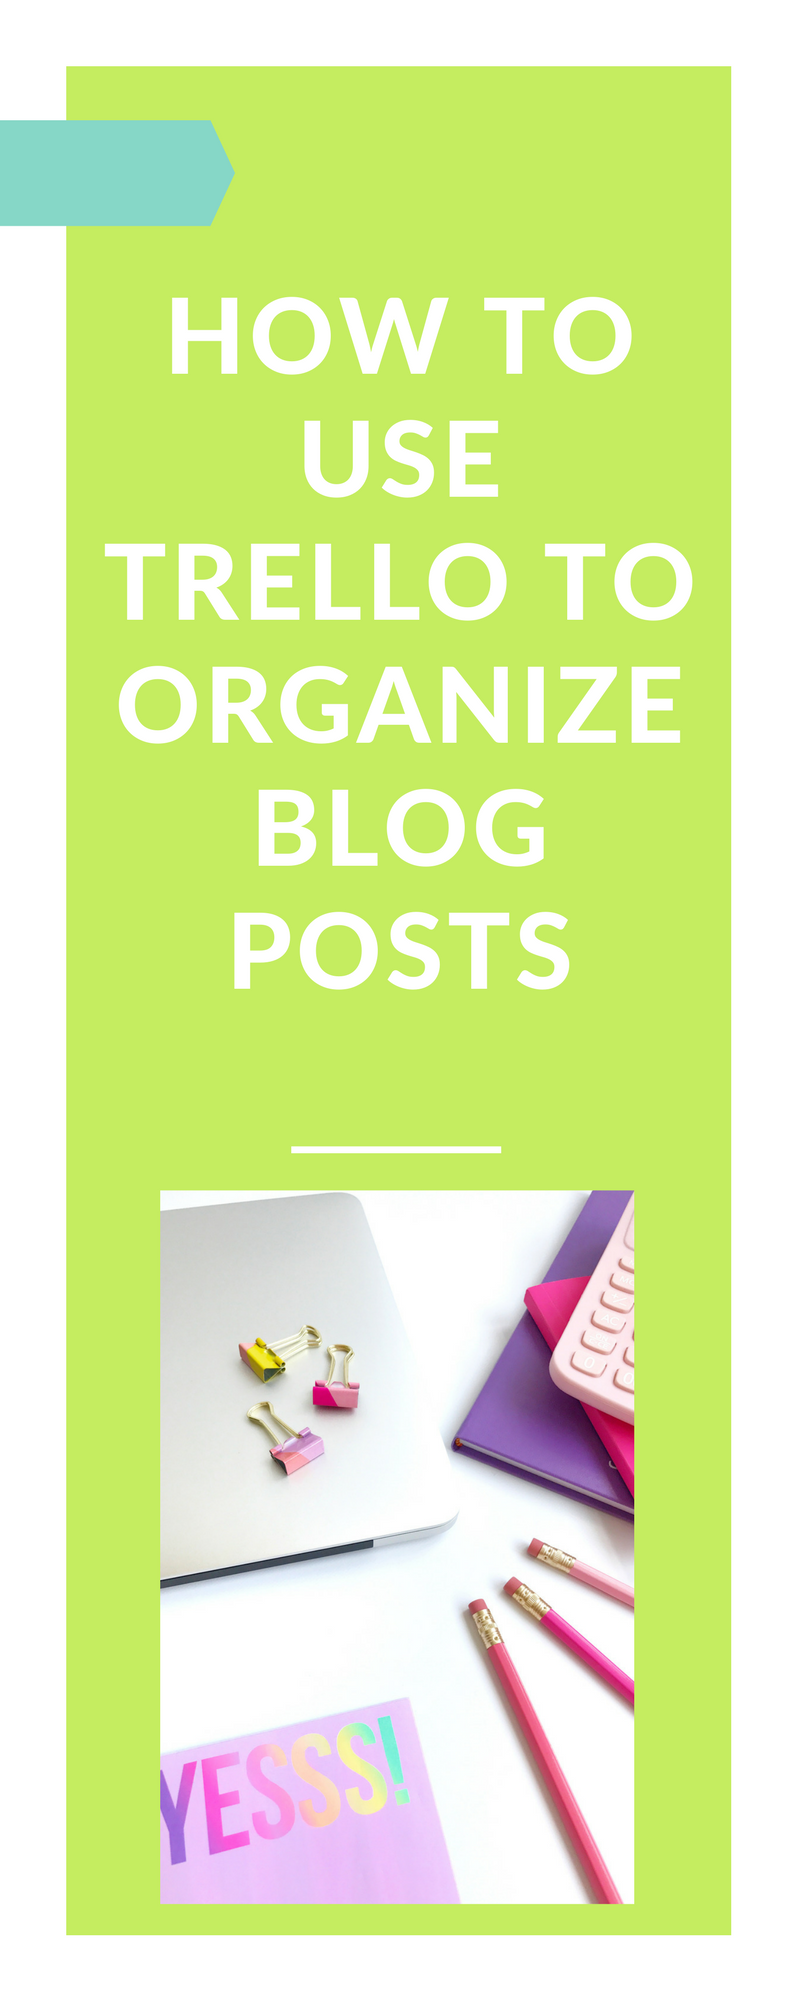 Organize blog with Trello.png